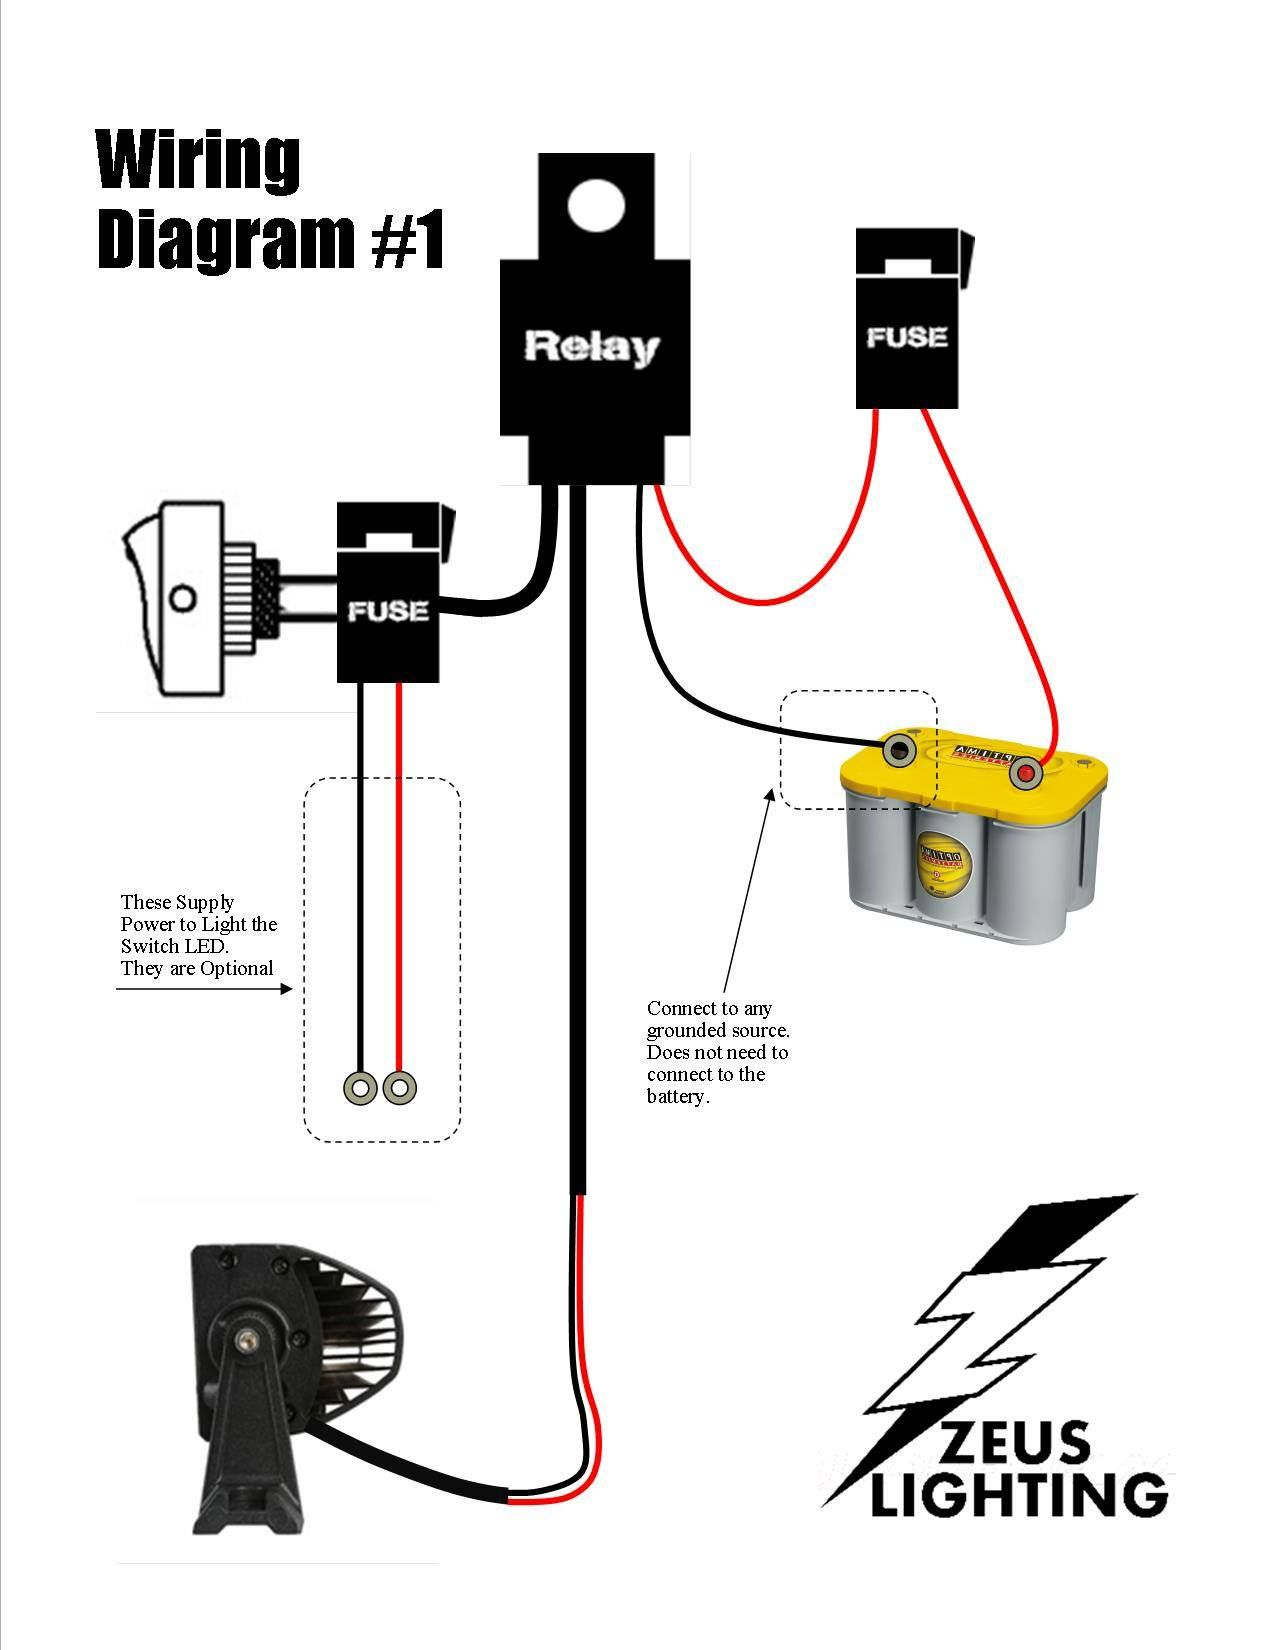 Pin By Patrick Makowski On Tractor Pinterest Jeep Trucks And Cars Ford F 150 Trailer Wiring Harness Camper 12 Volt Diagram